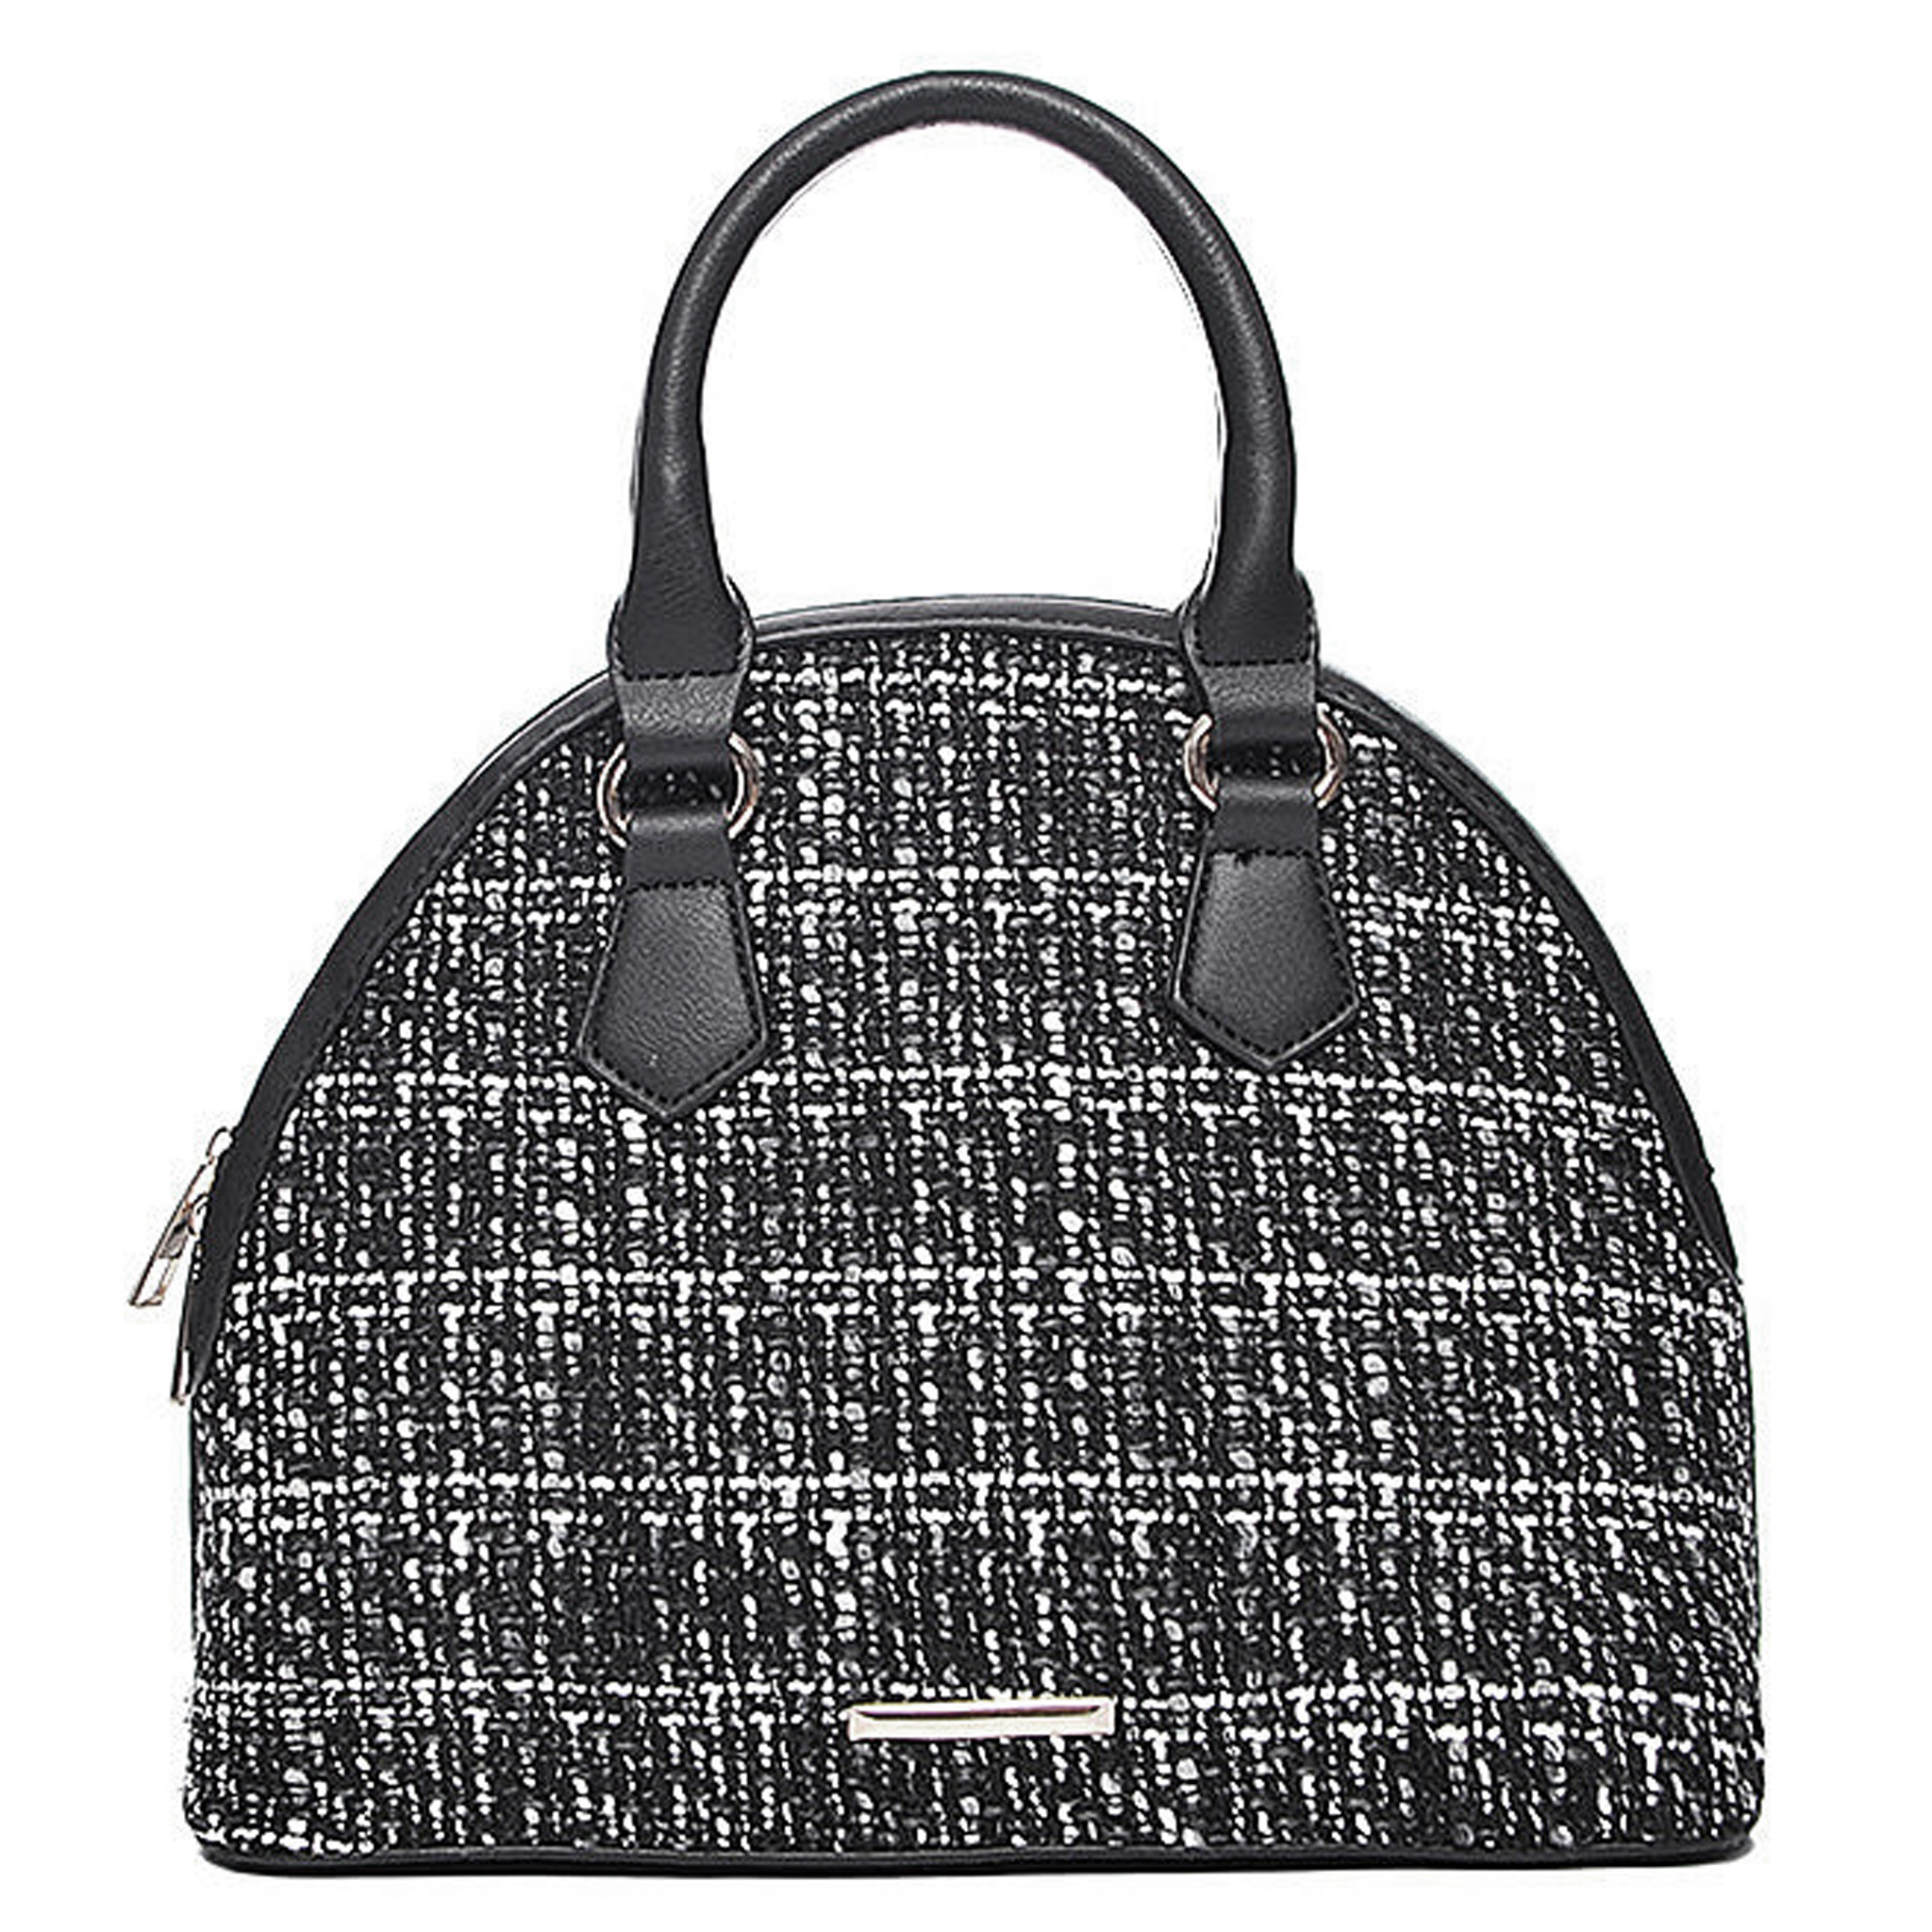 kleine damen handtasche tweed bowling tasche schwarz weiss. Black Bedroom Furniture Sets. Home Design Ideas